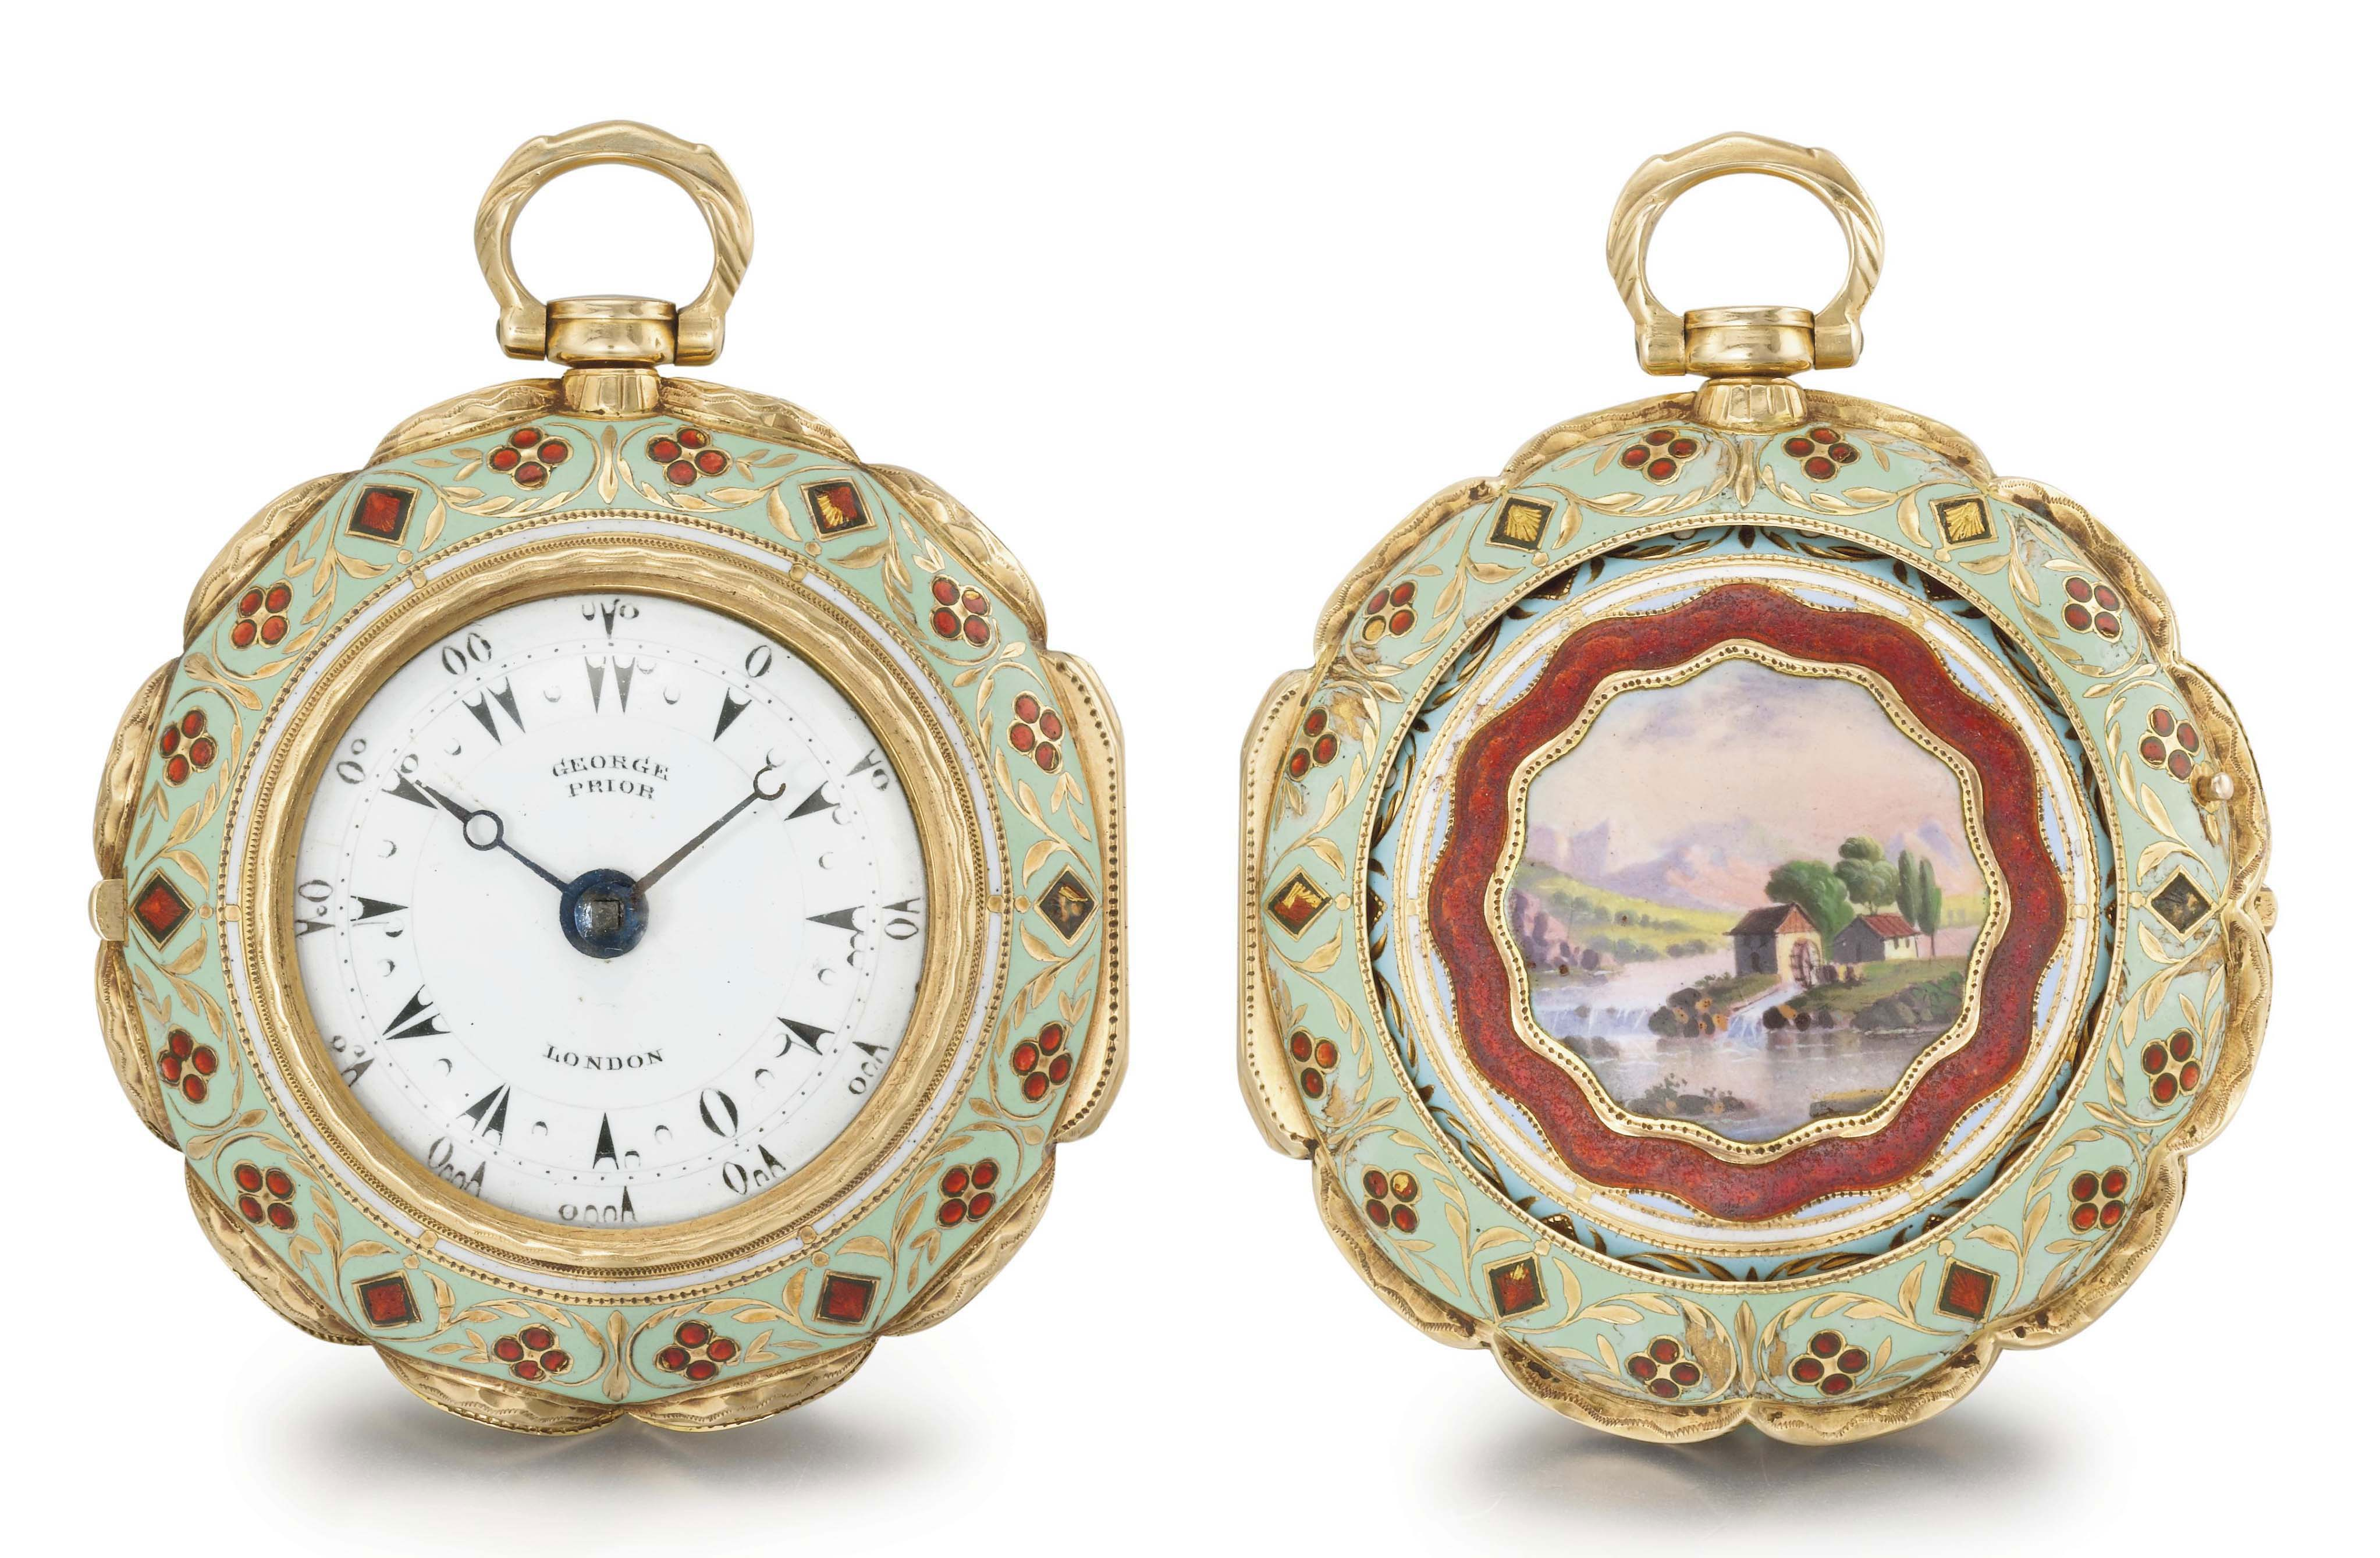 George Prior. A fine and small 18K gold and enamel triple case verge watch, made for the Turkish market